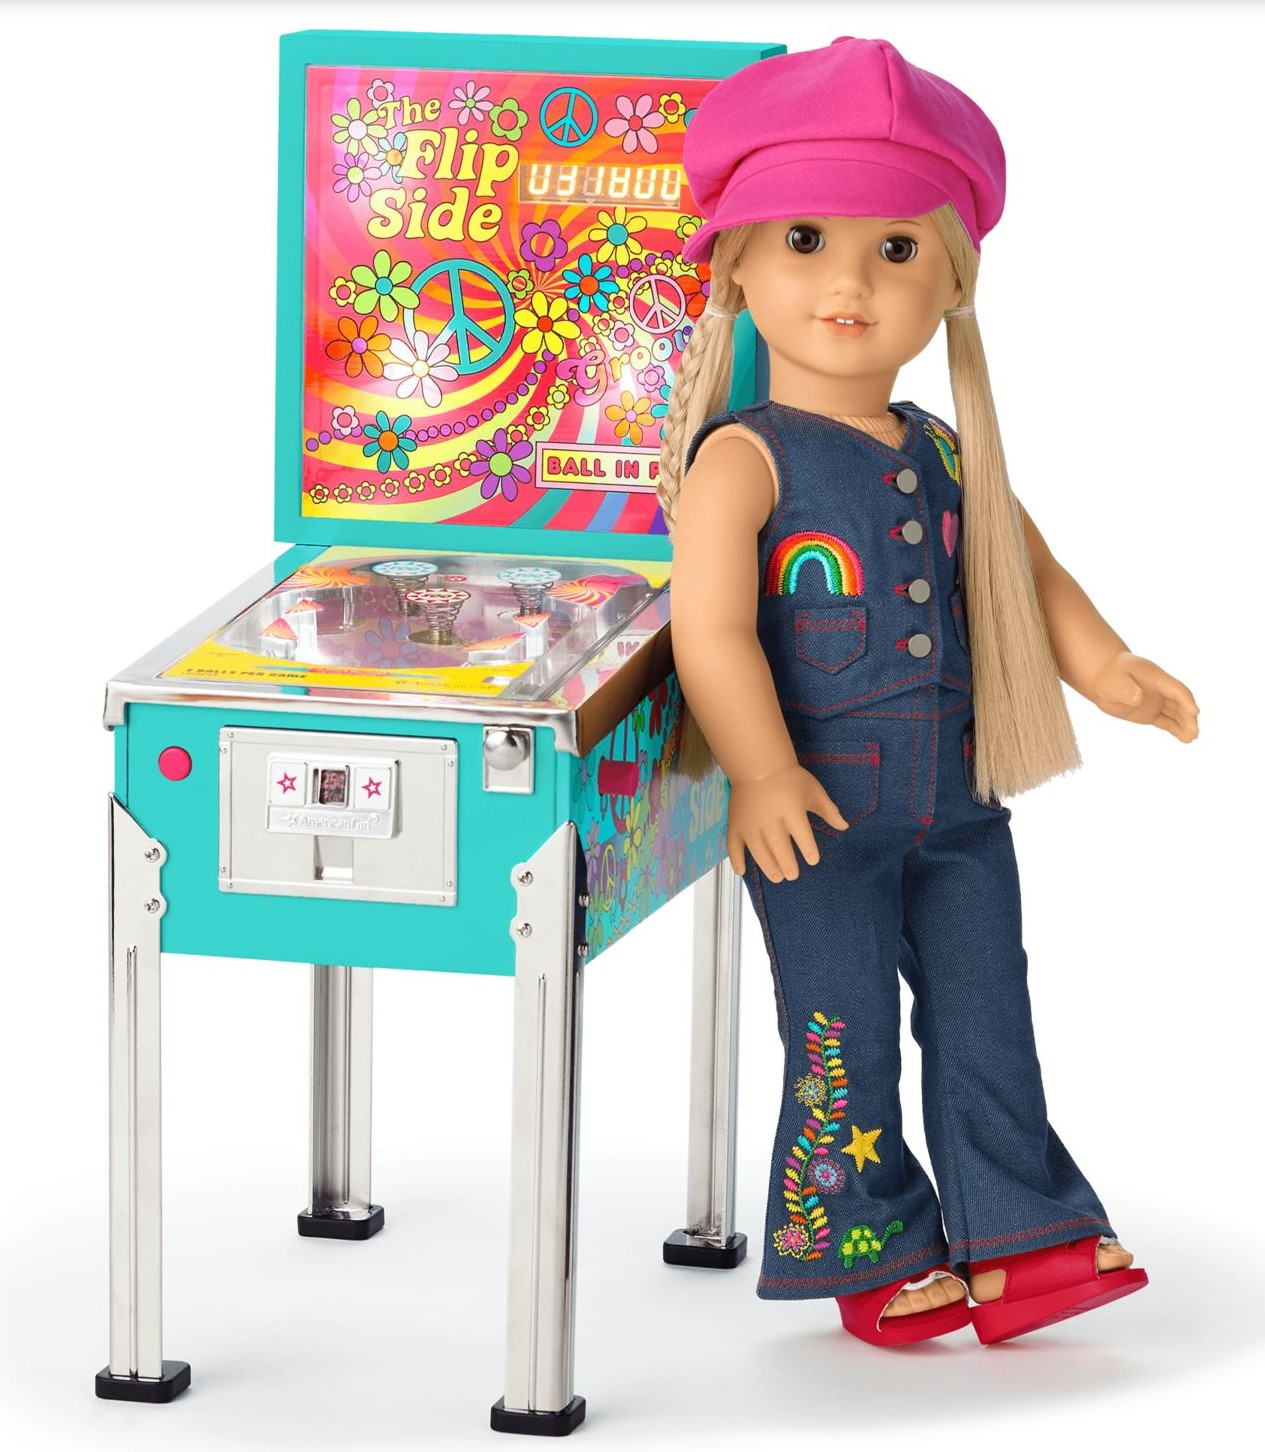 The Pinball Mafia vs. The Flip Side